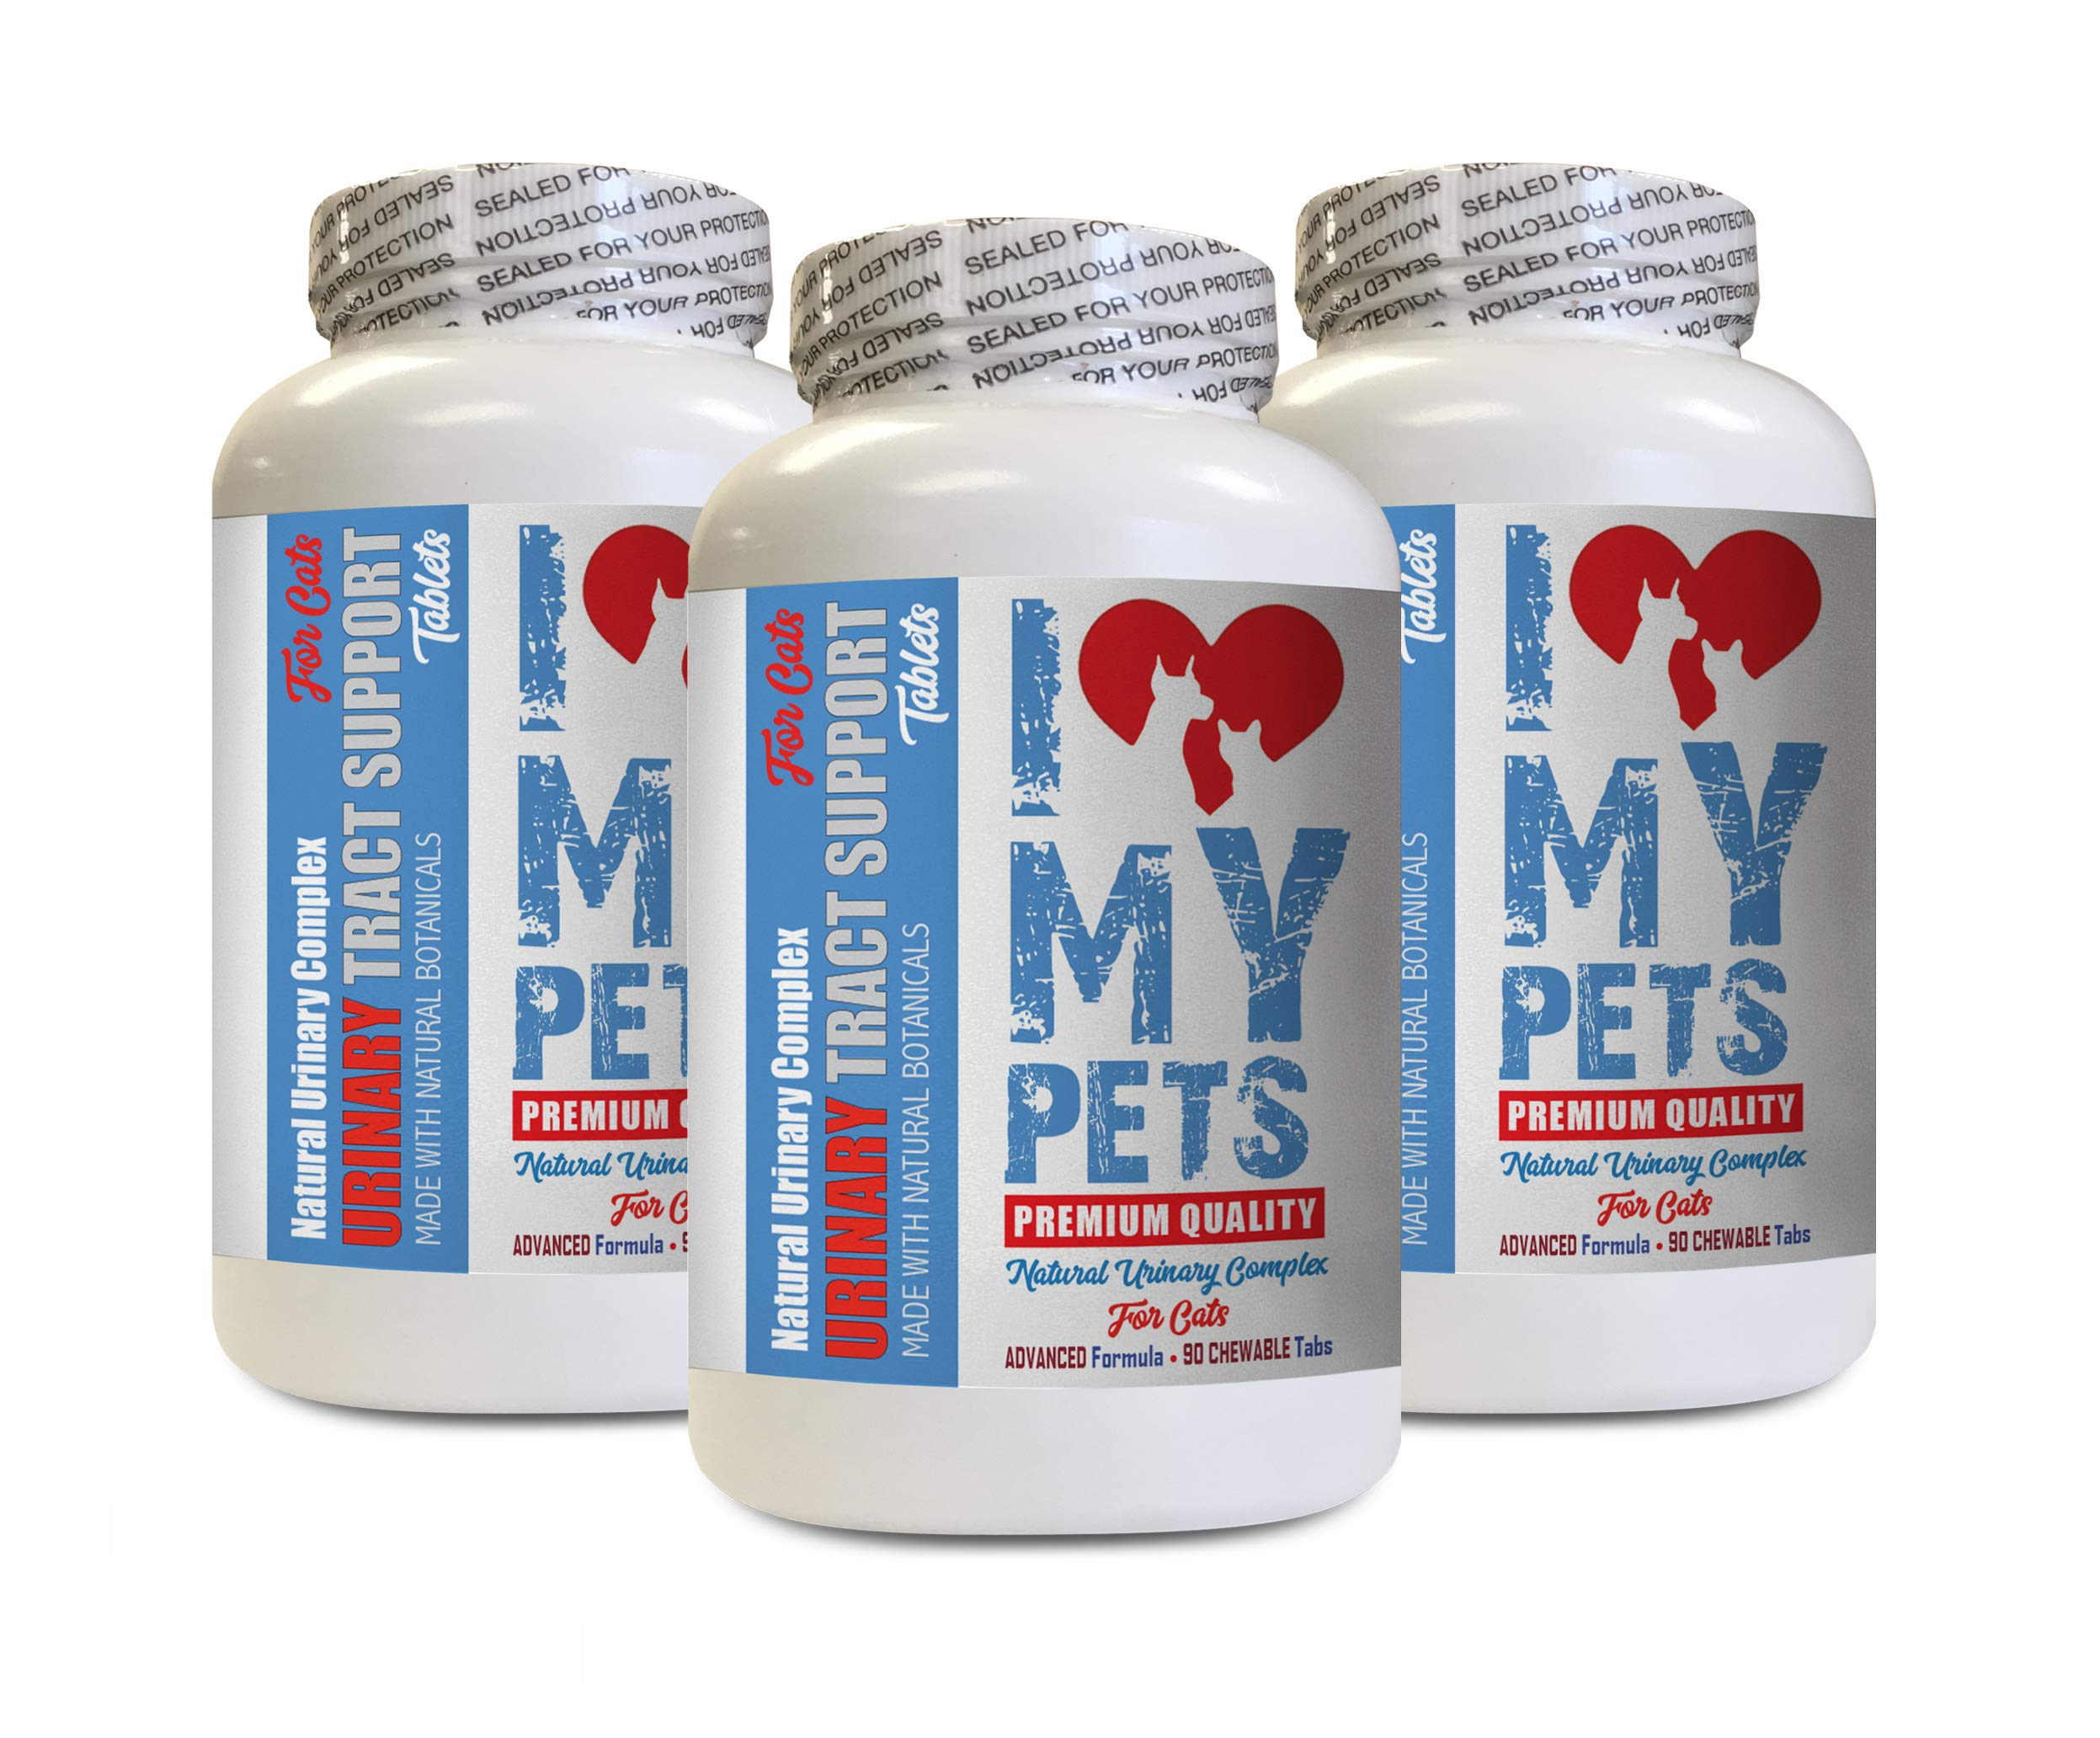 I LOVE MY PETS LLC Bladder Support for Cats - CAT Urinary Tract Support - Natural Complex - Premium - Urinary Tract Supplements for Cats - 270 Treats (3 Bottles) by I LOVE MY PETS LLC